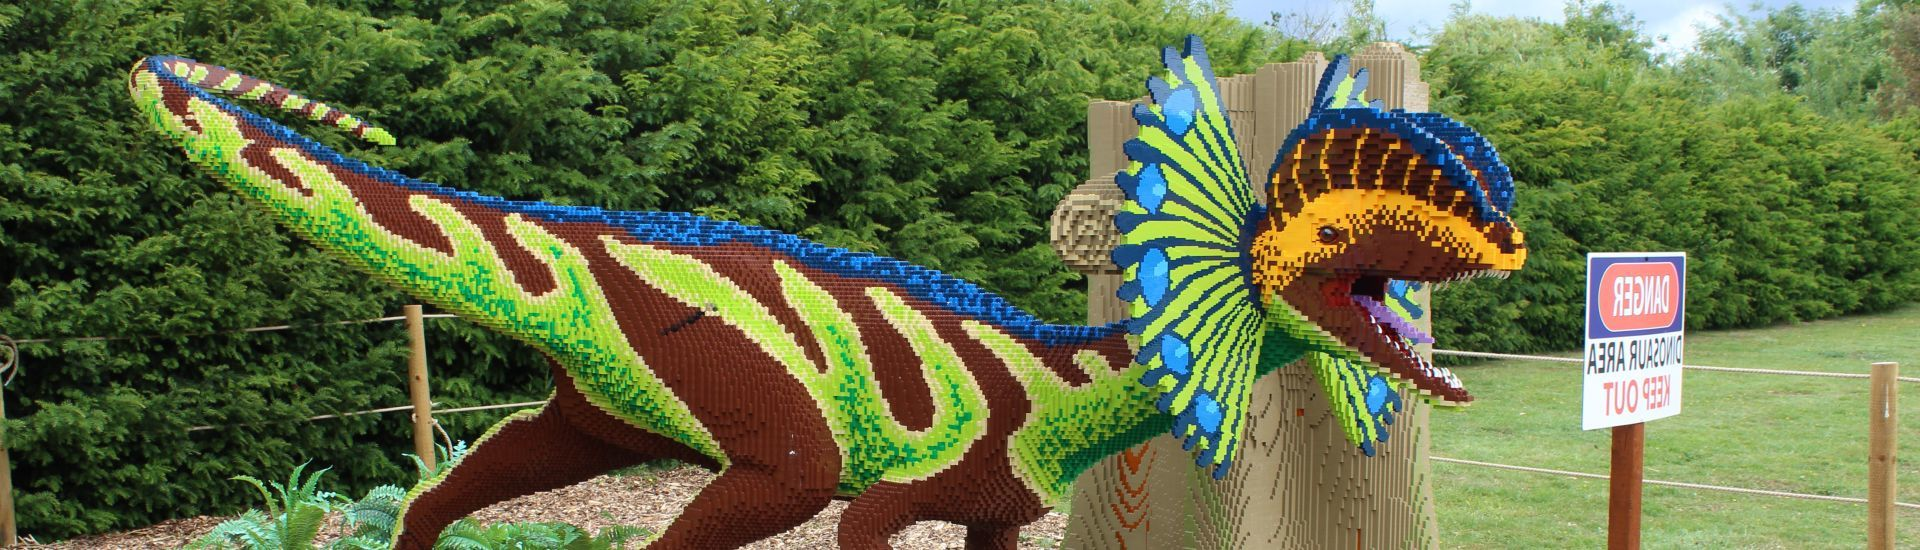 Get Brickosaur Hunting at Marwell this Summer!